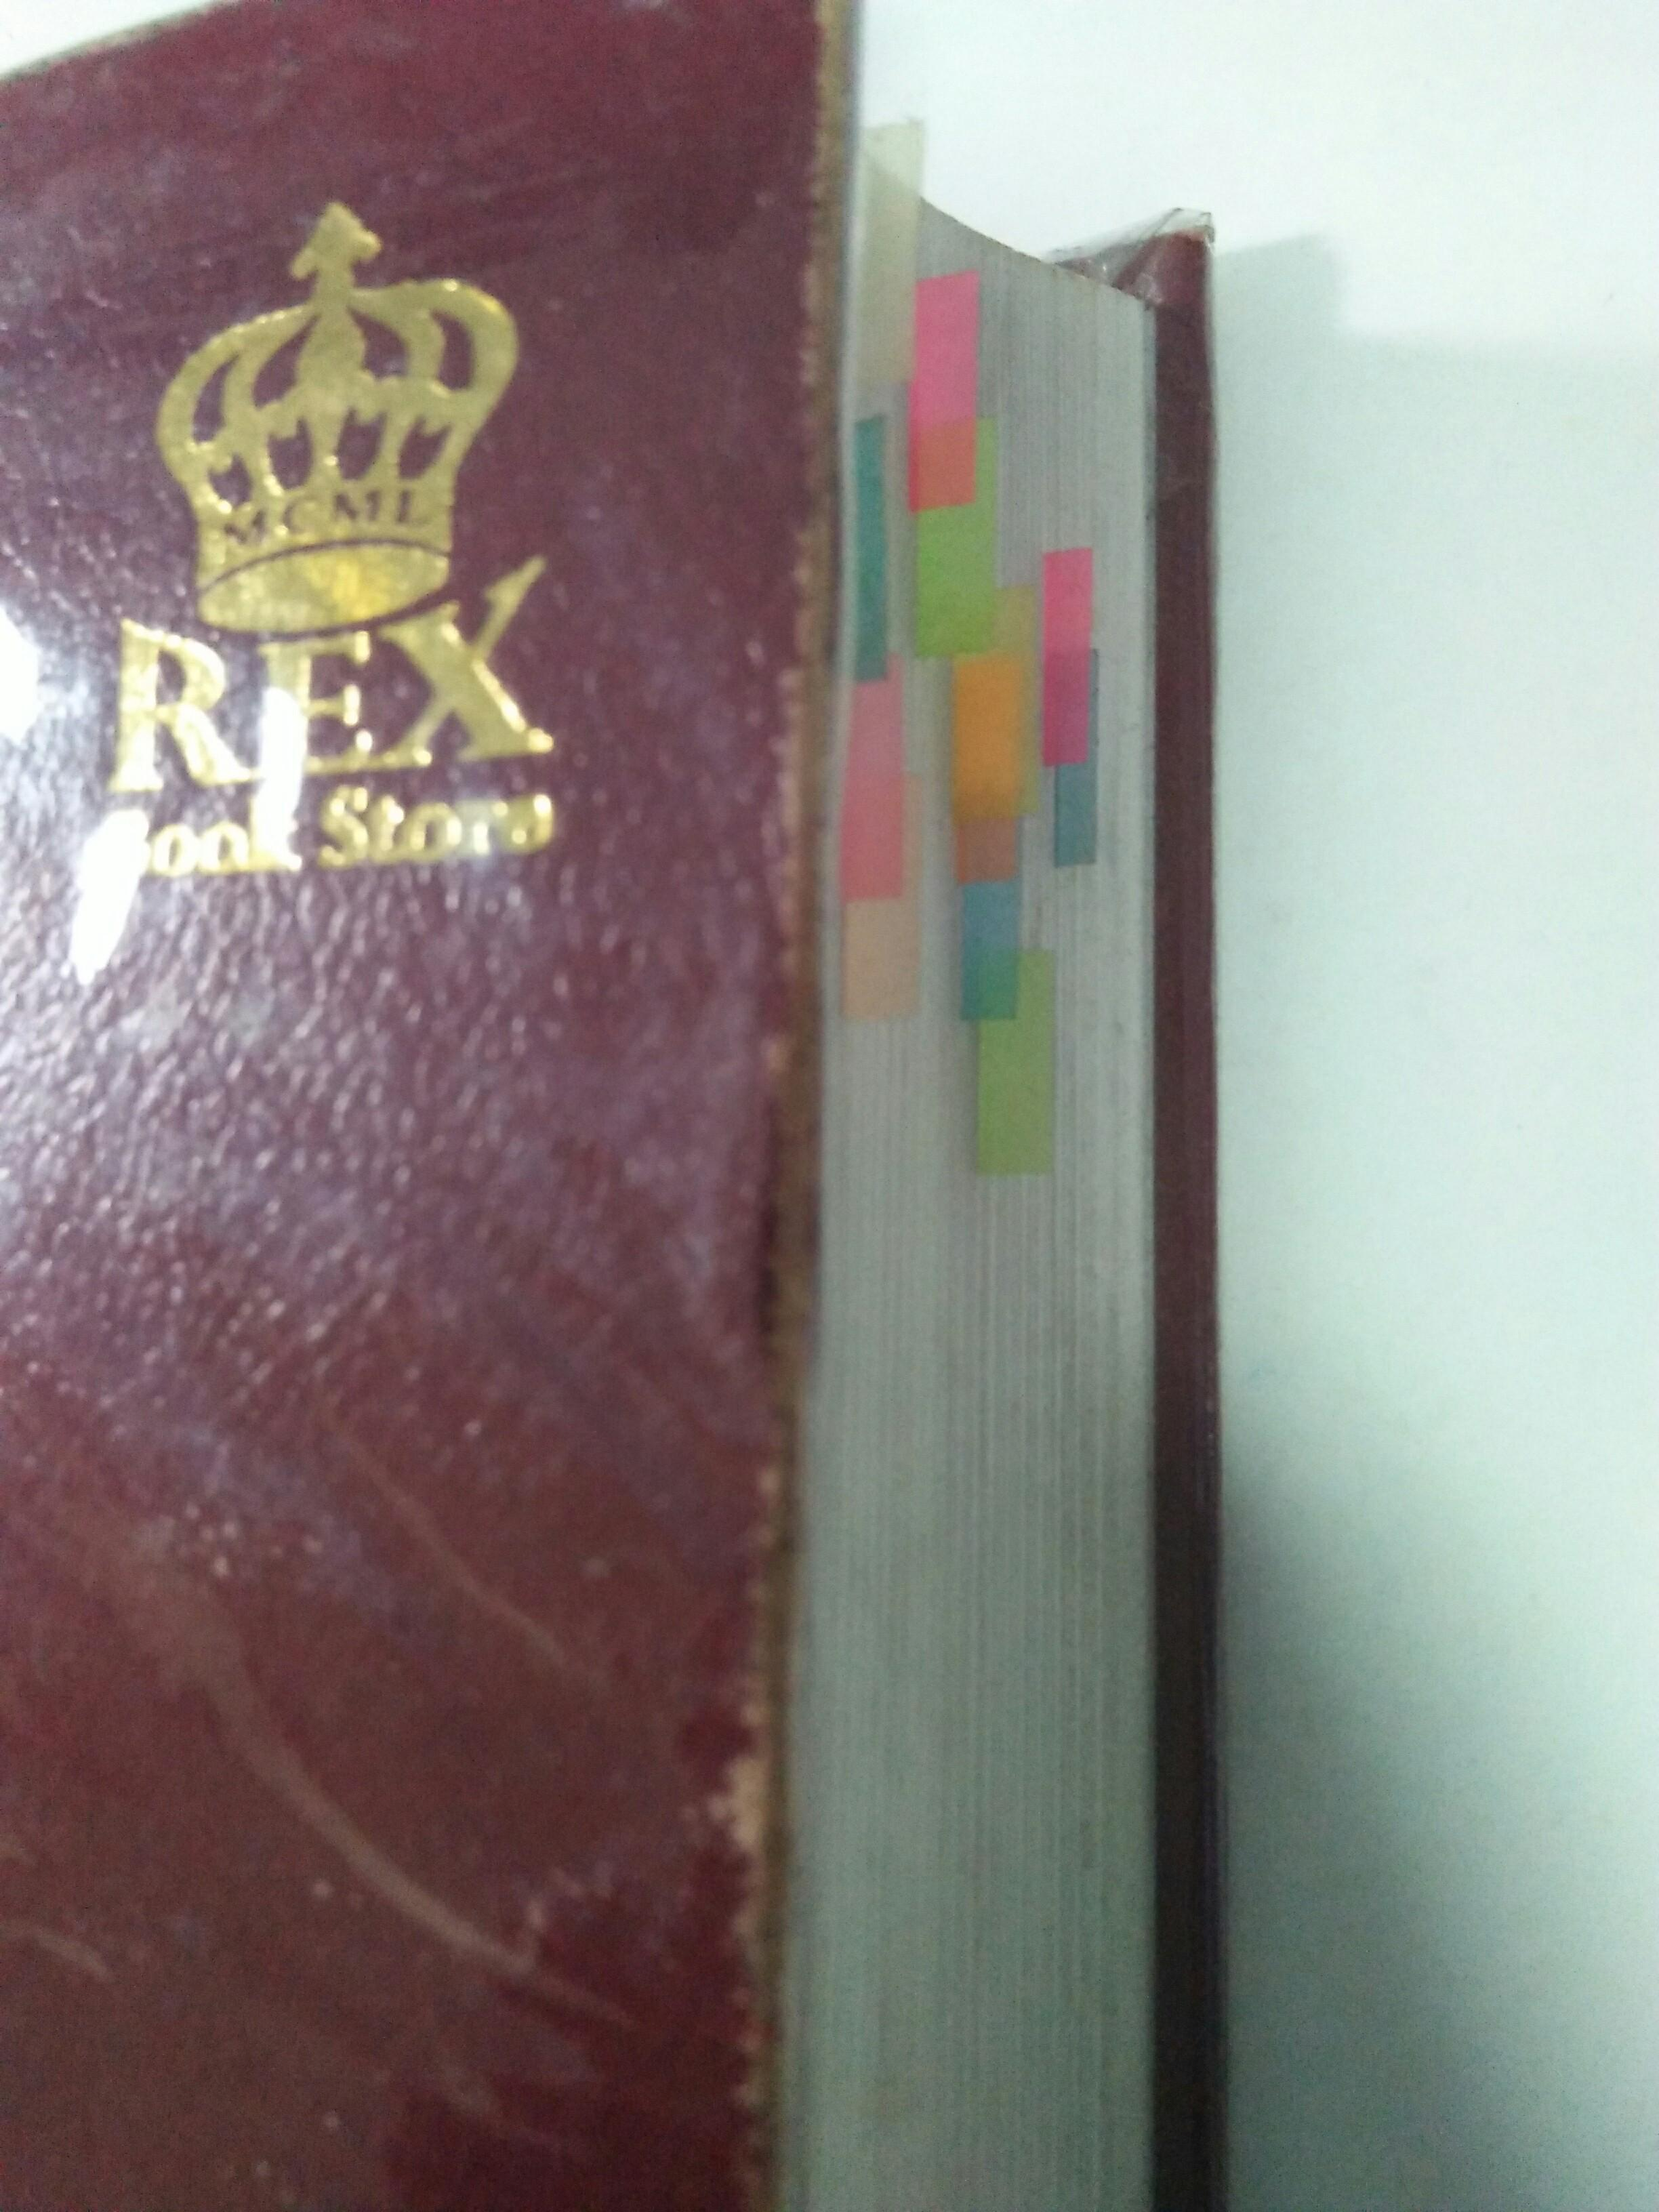 [LAW BOOKS] The Revised Penal Code Book I Annotated - Reyes - 2012